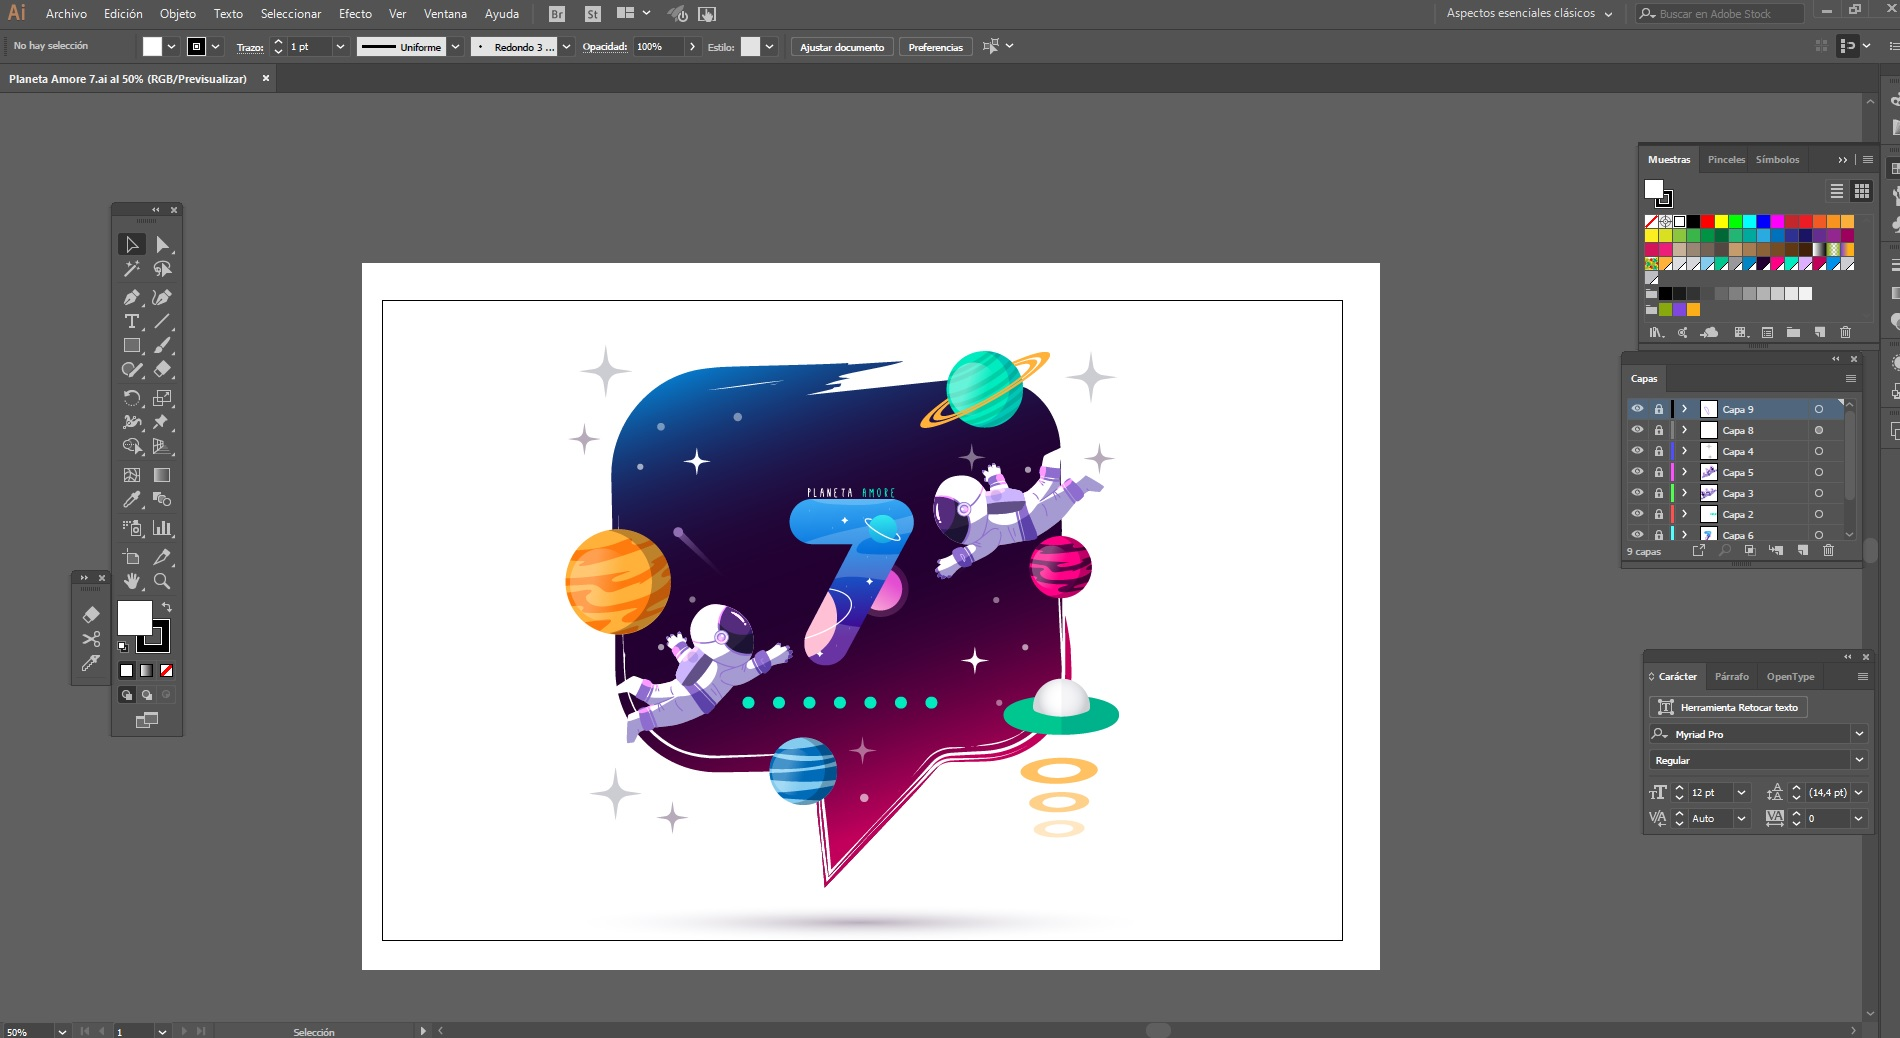 Curso Illustrator: El entorno de Illustrator